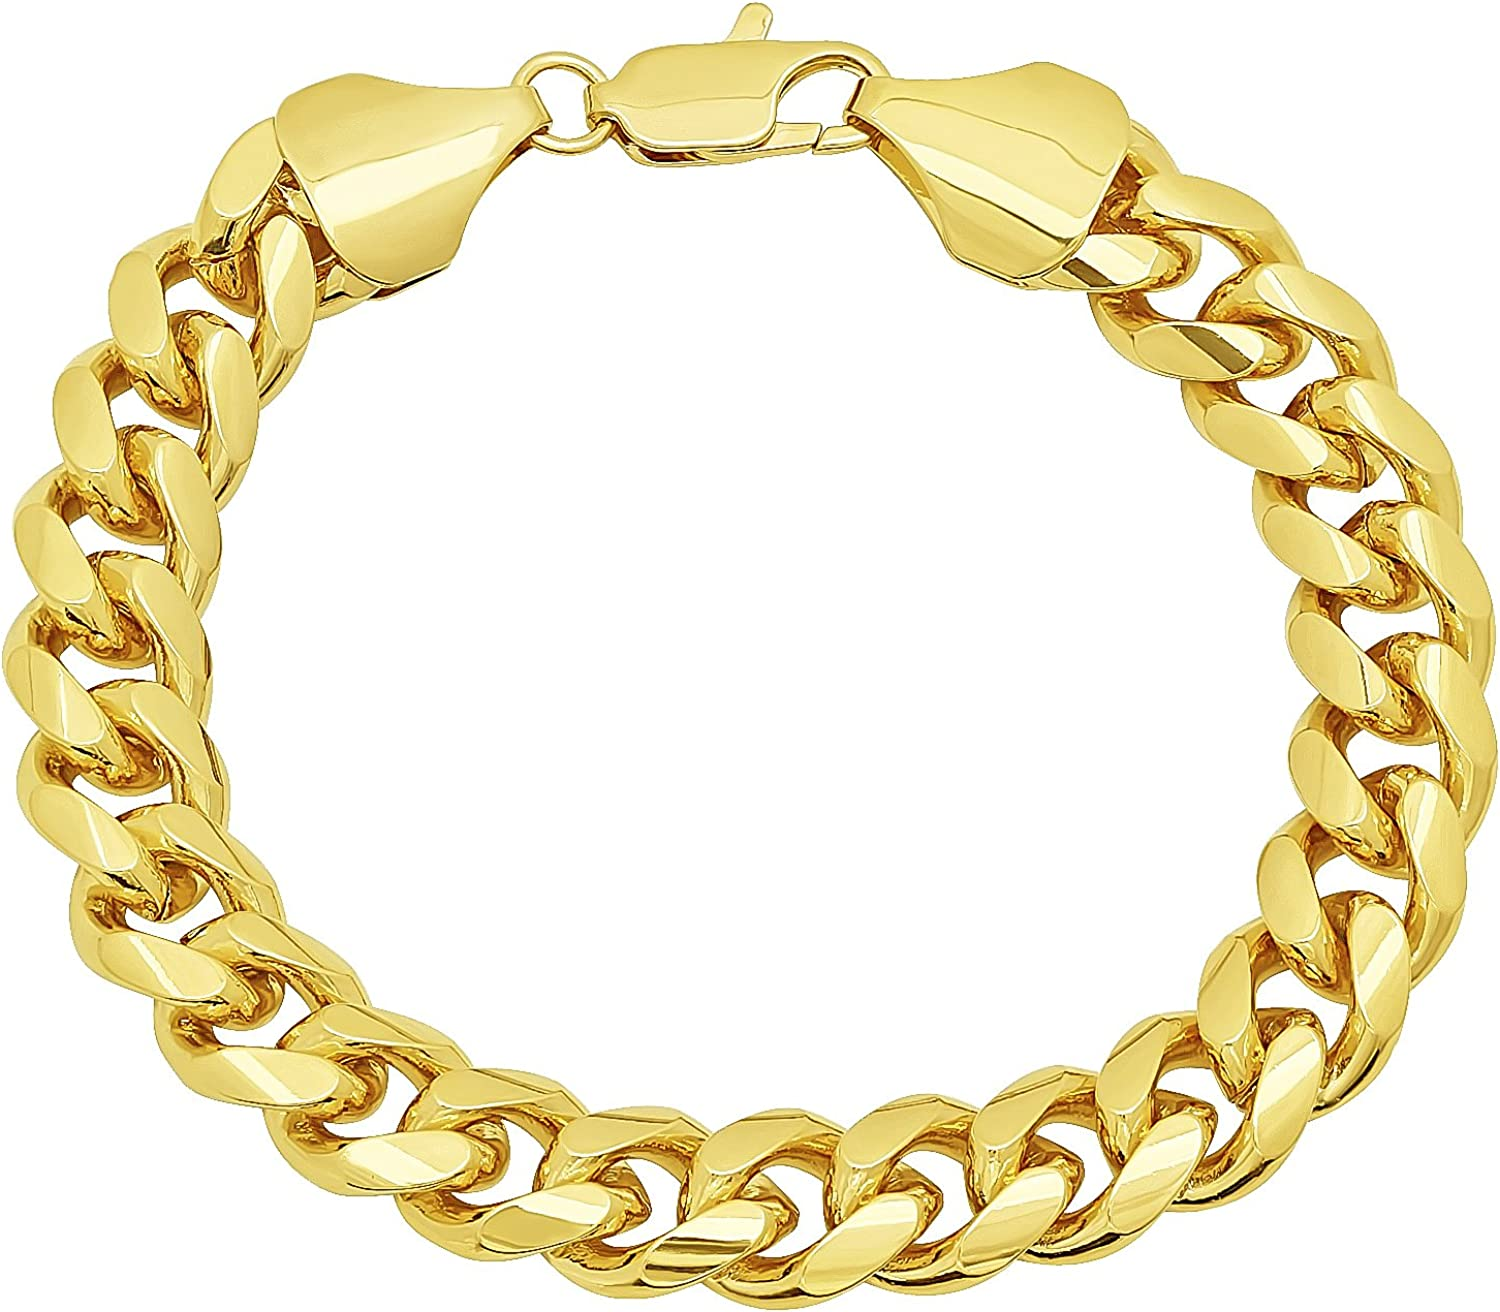 The Bling Factory 11mm 0.25 mils (6 microns) 14k Yellow Gold Plated Miami Cuban Link Chain Necklace, 7'-36 + Jewelry Cloth & Pouch